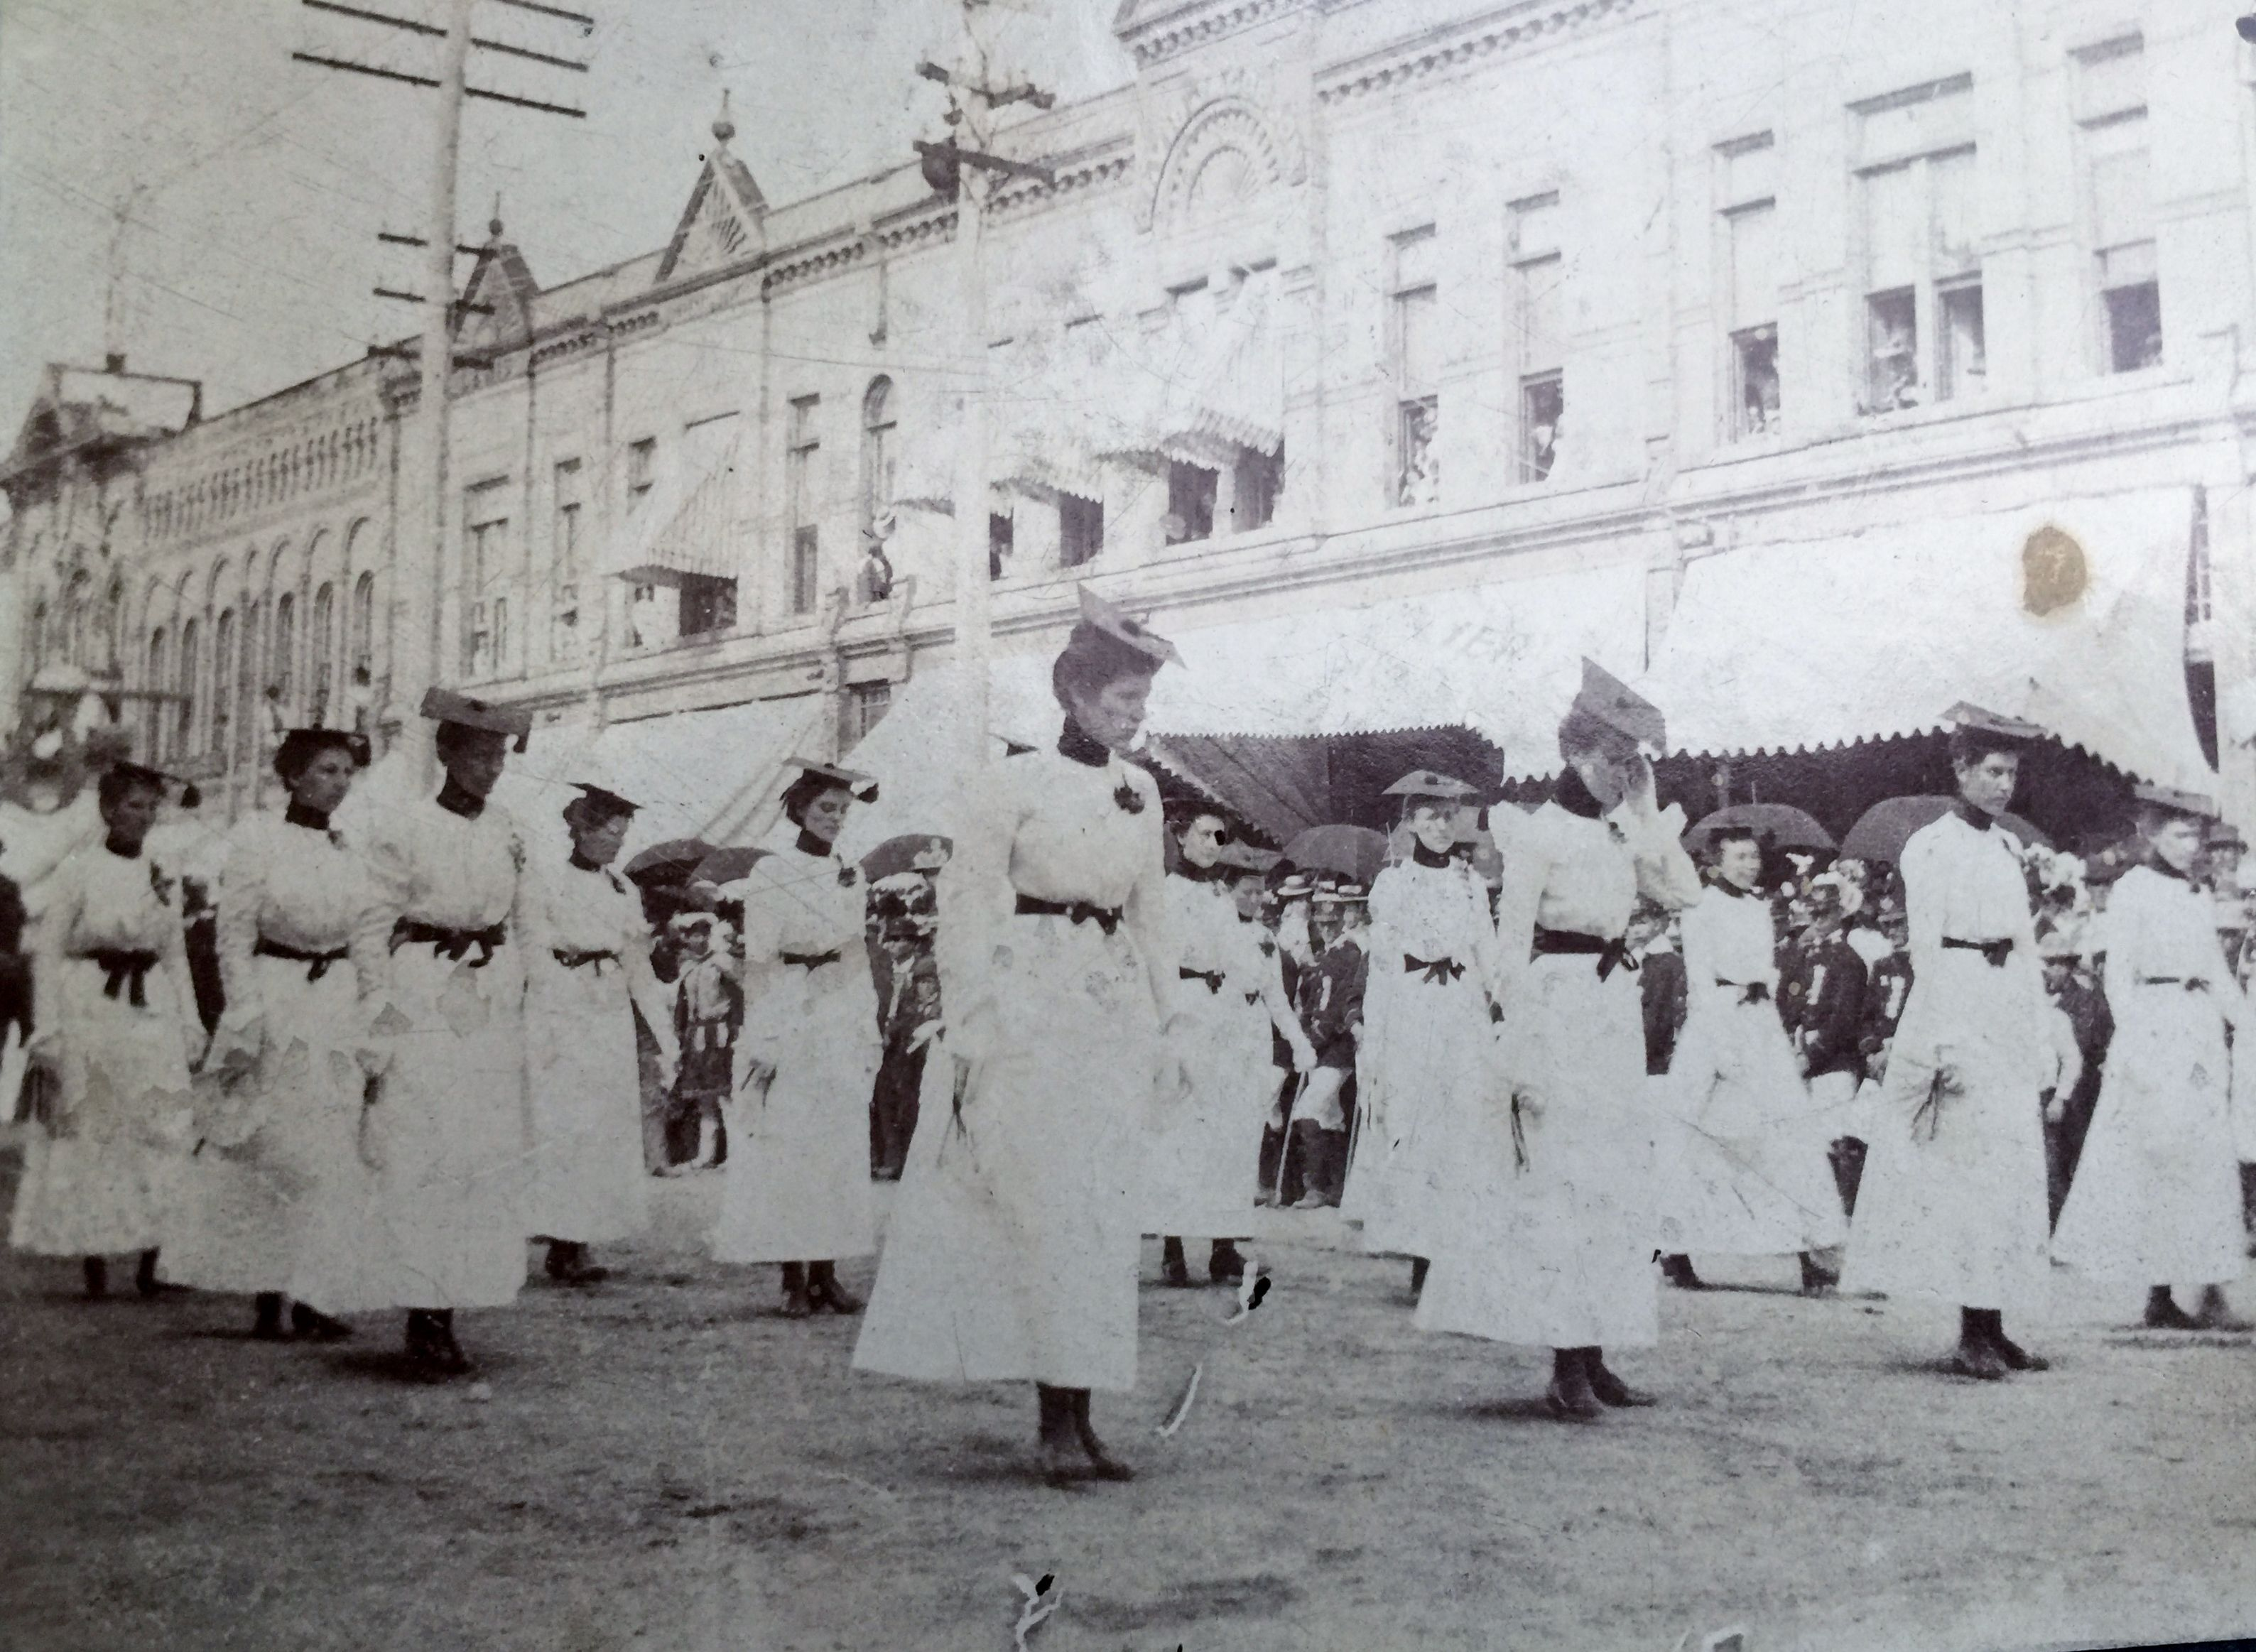 Ladies of the Maccabees march down Lafayette Street, Greenville, Michigan. Circa 1880.